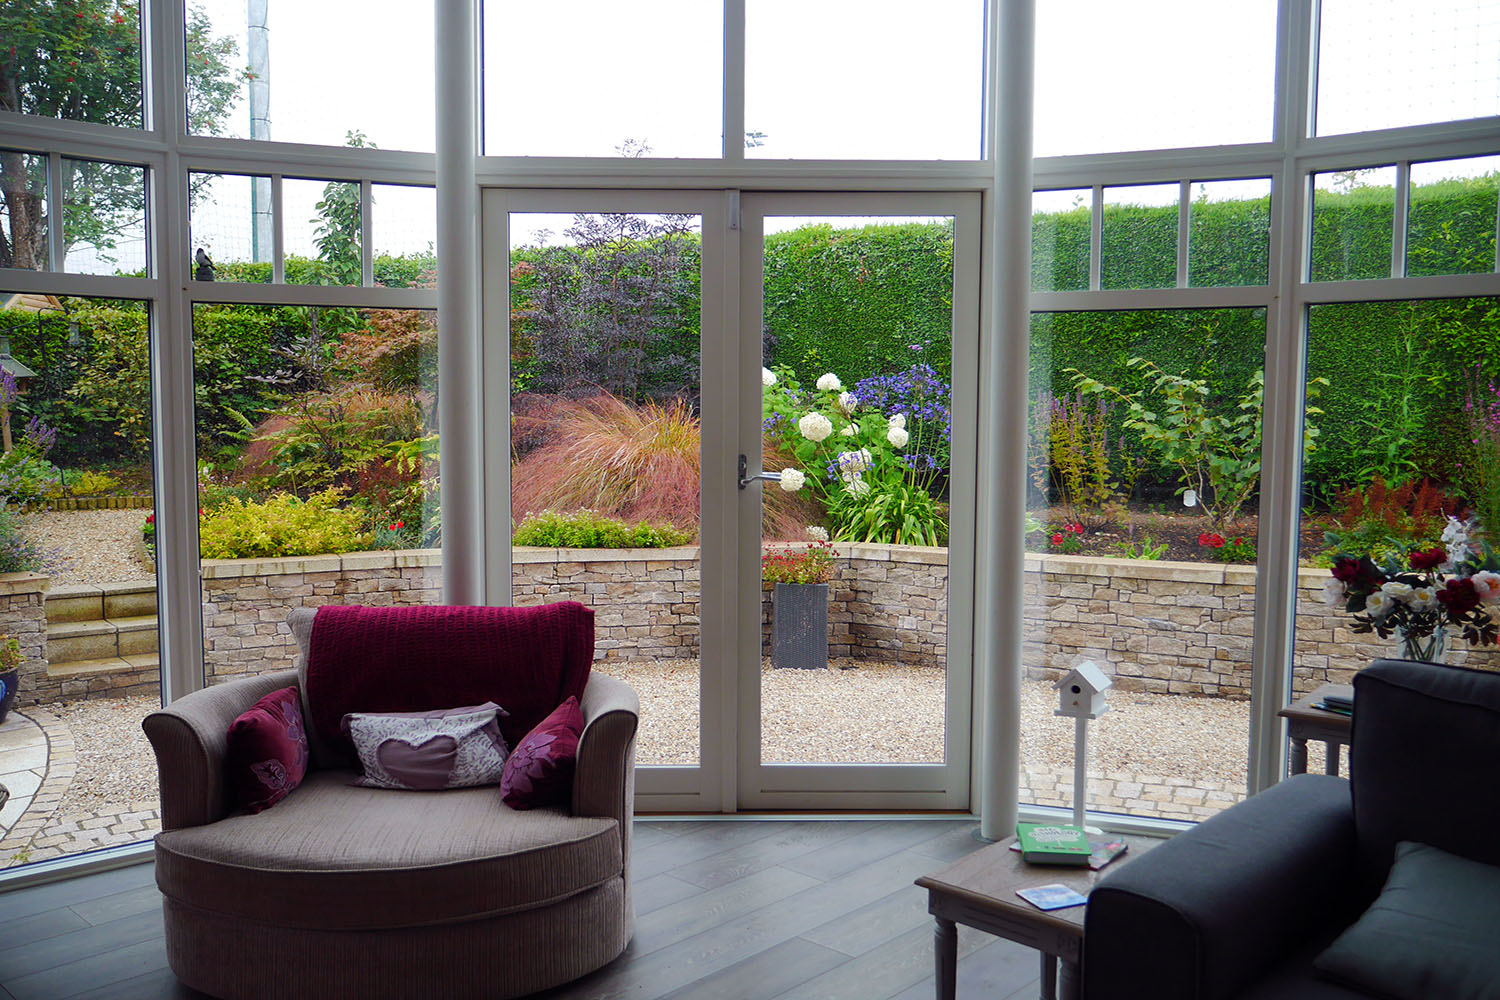 window, view, garden, lounge, outdoor room